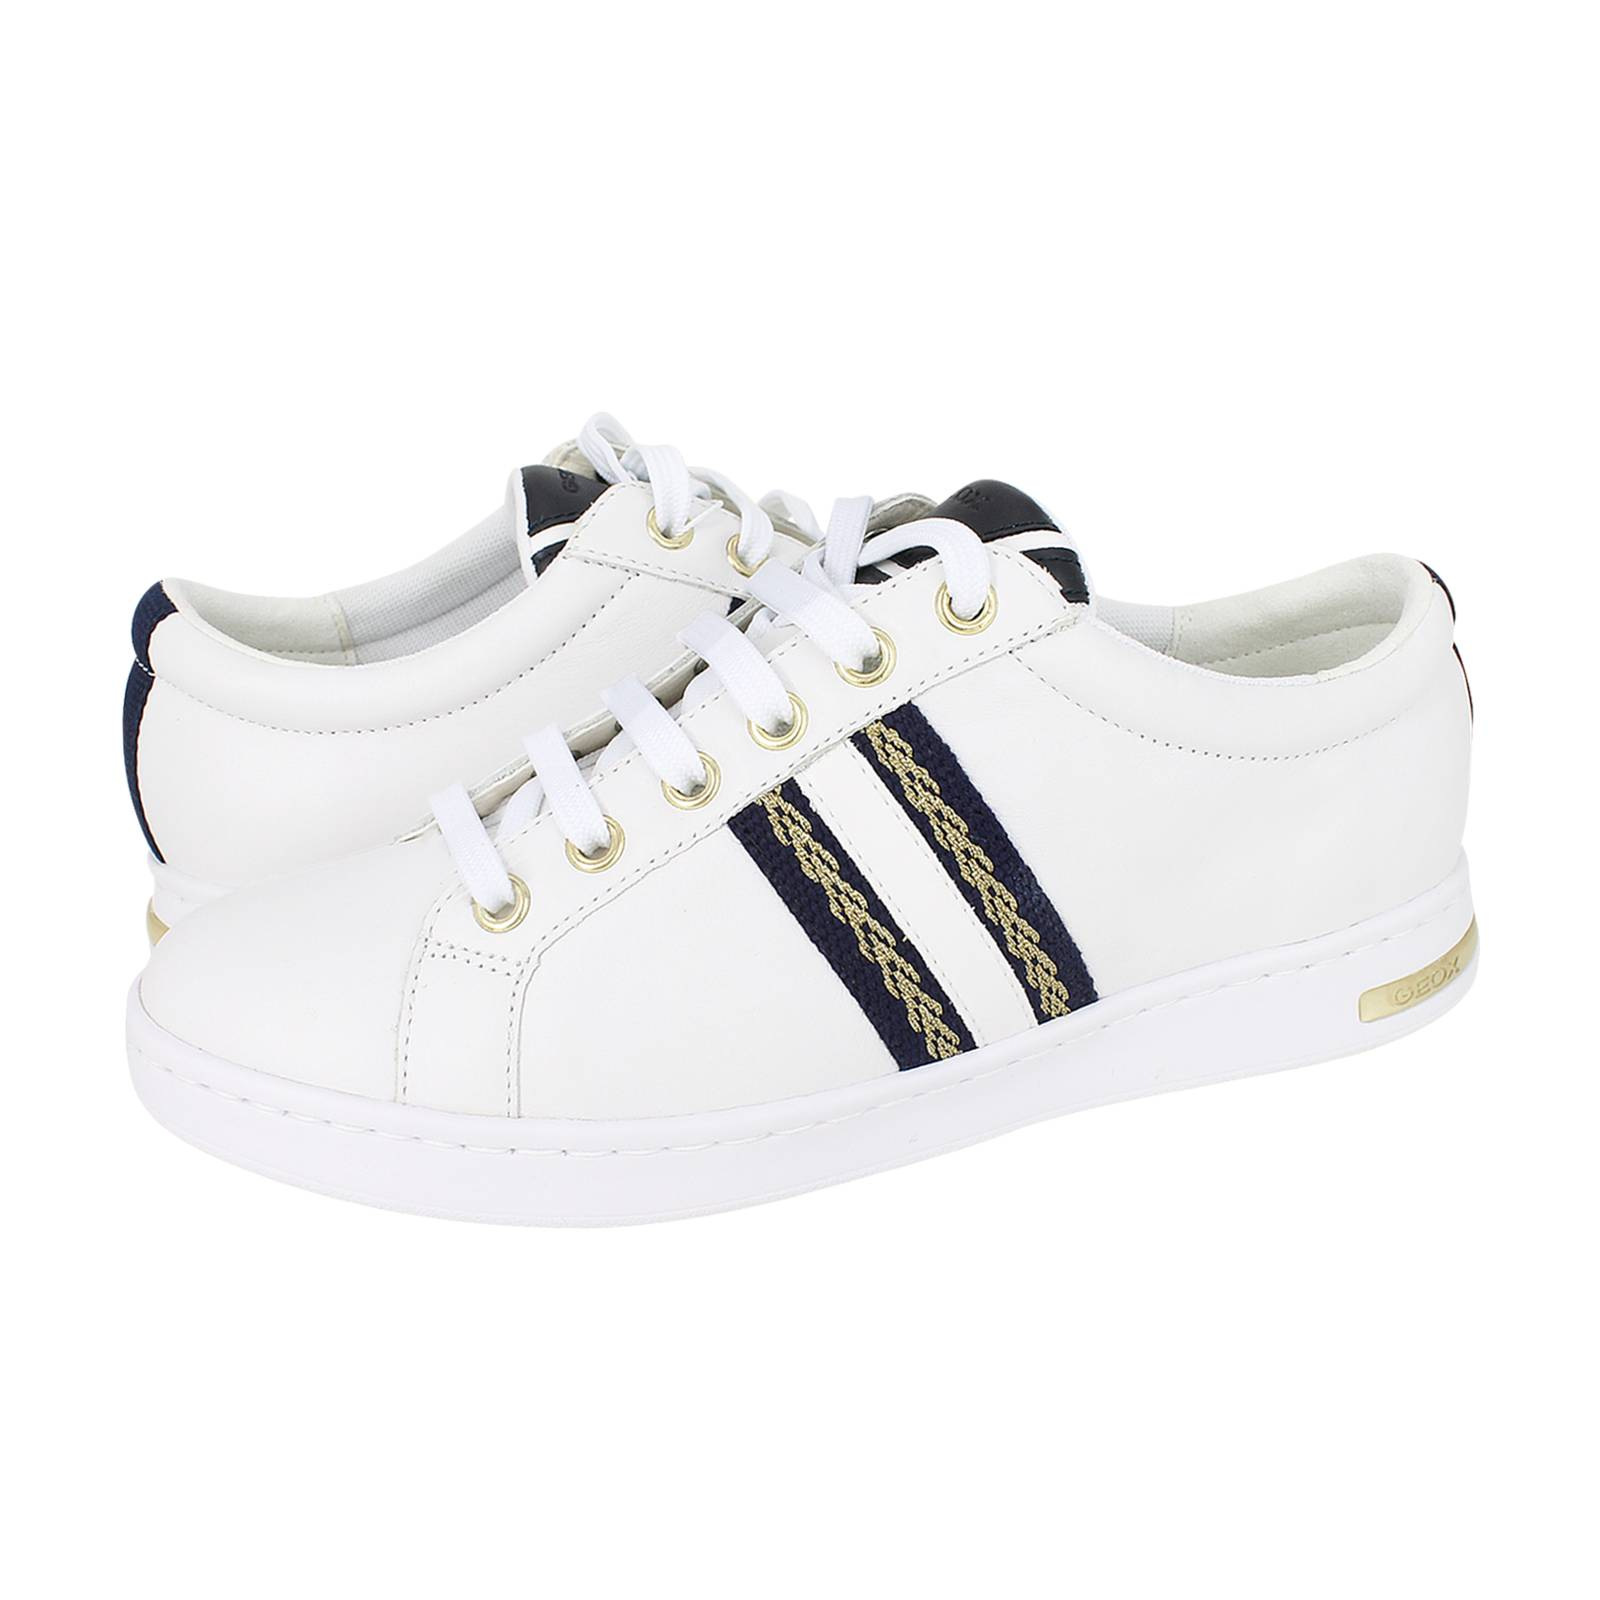 Geox Chisamba casual shoes